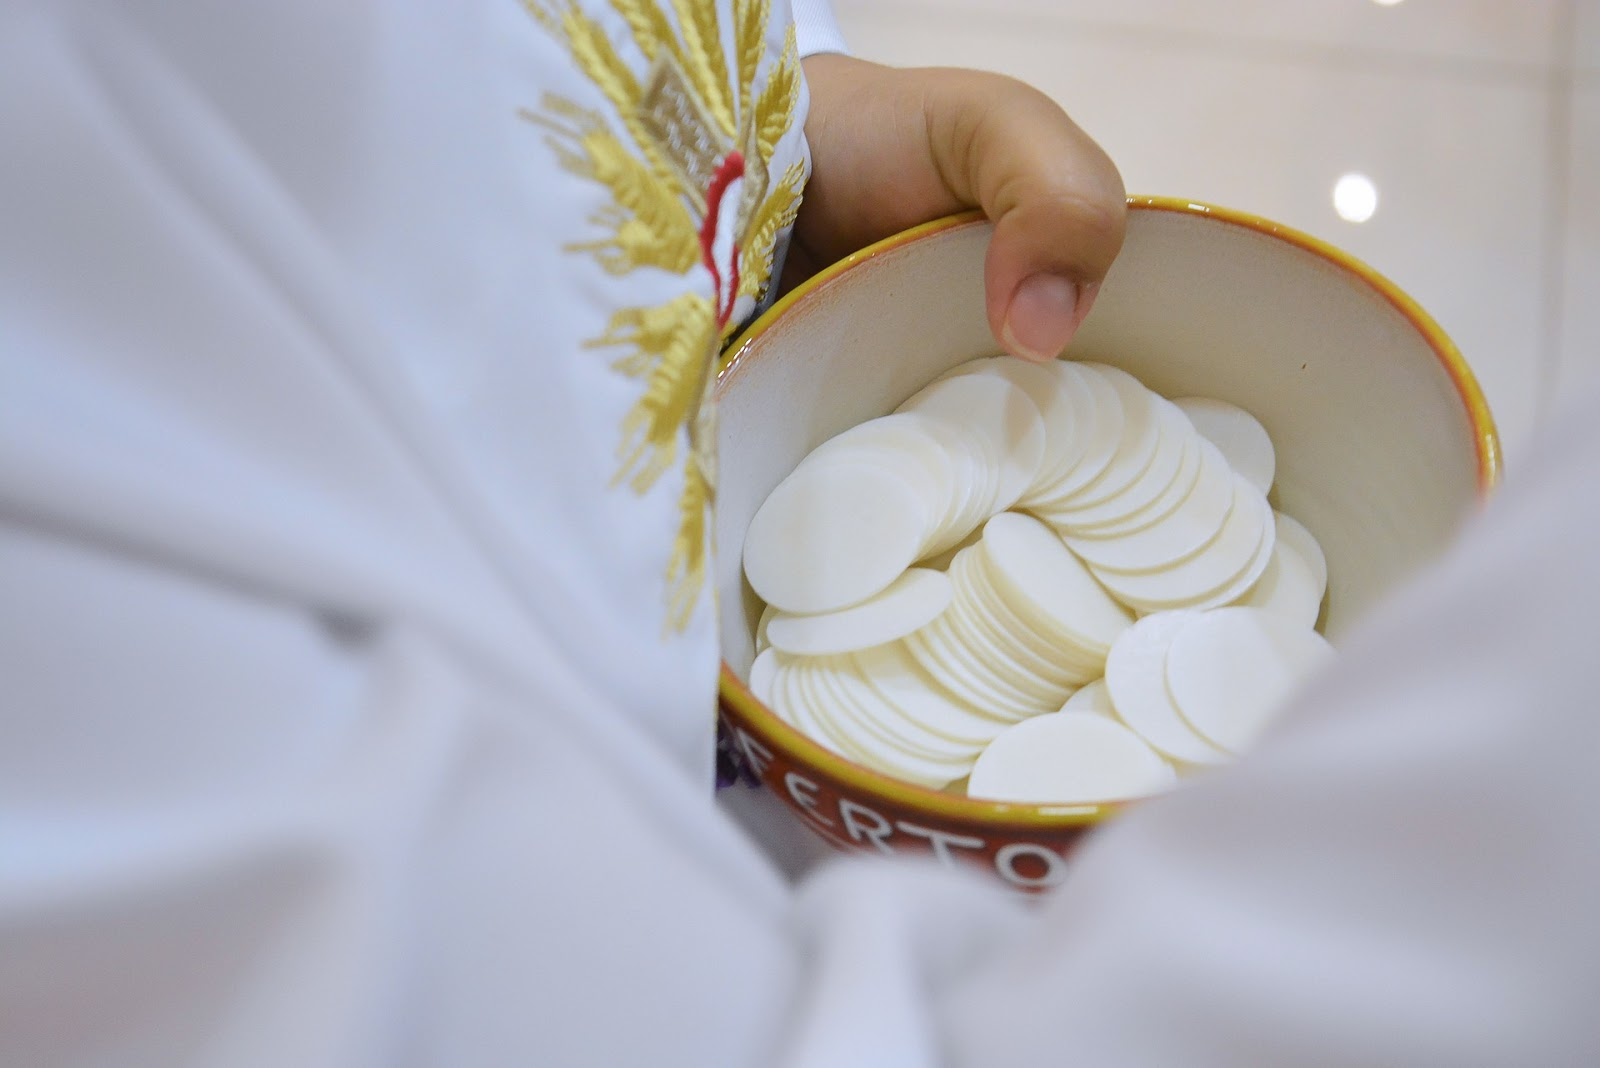 A robed person holds communion wafers